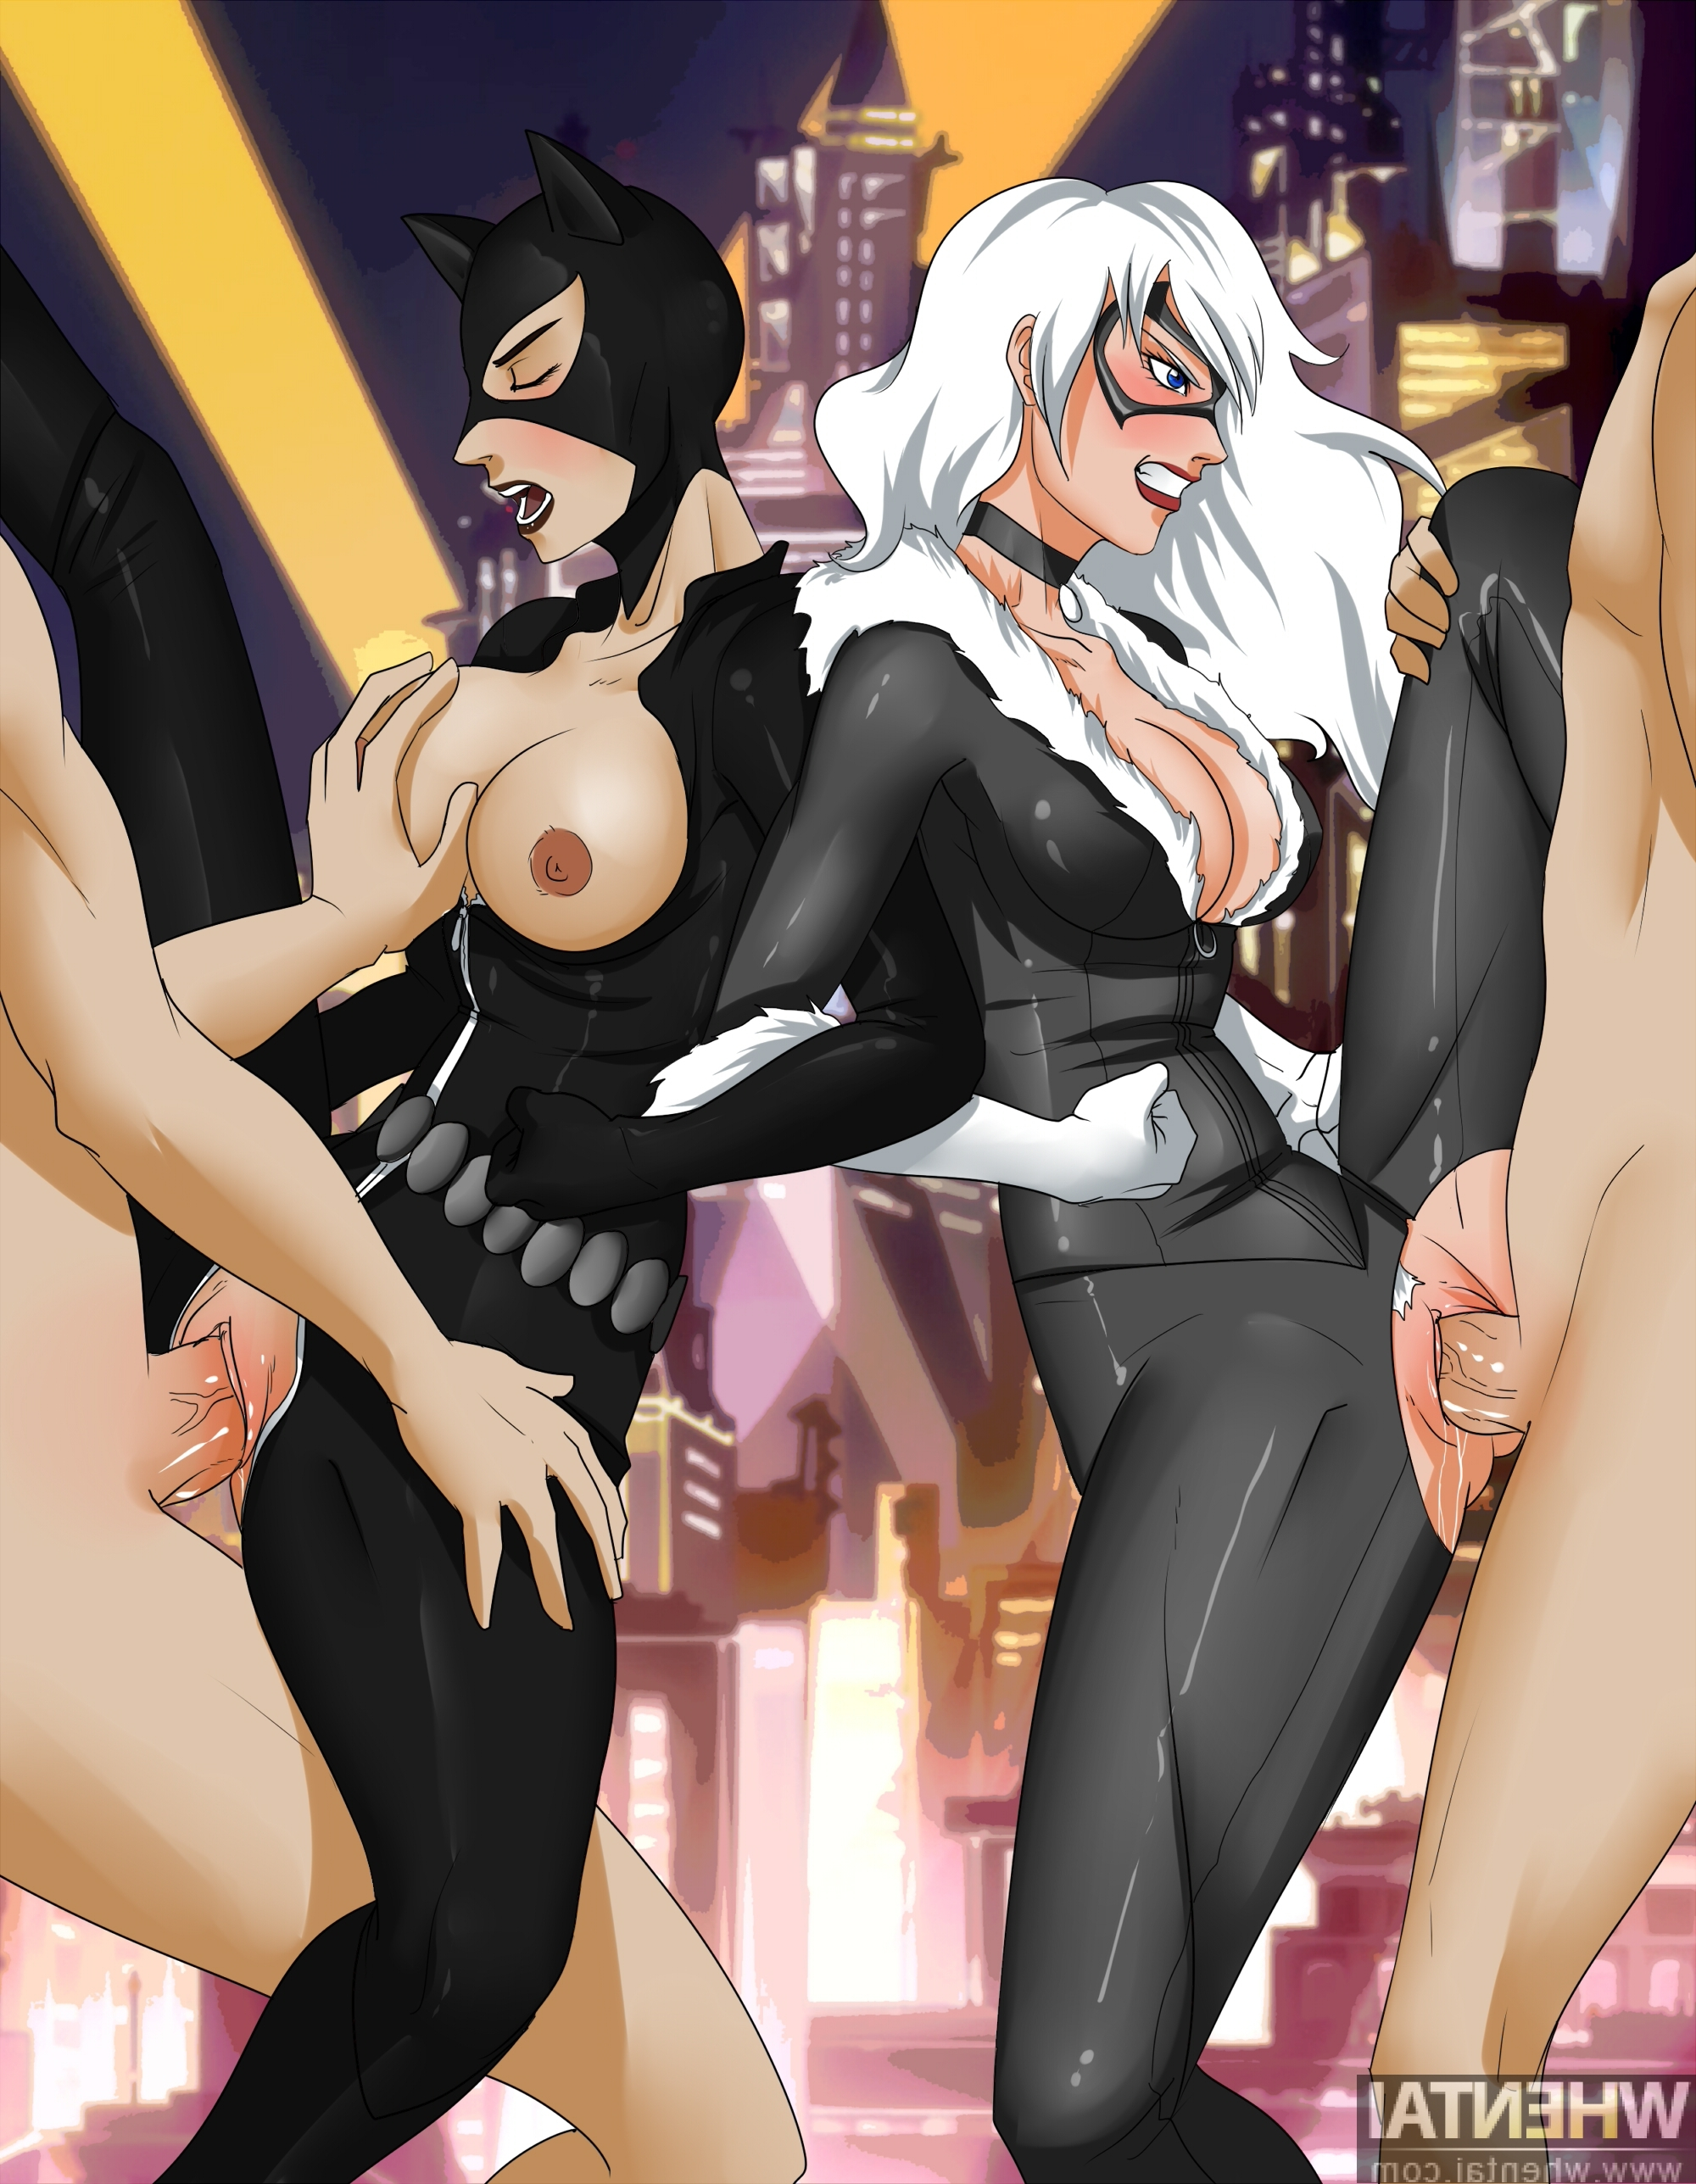 Black cat and catwoman lesbian porn variants are